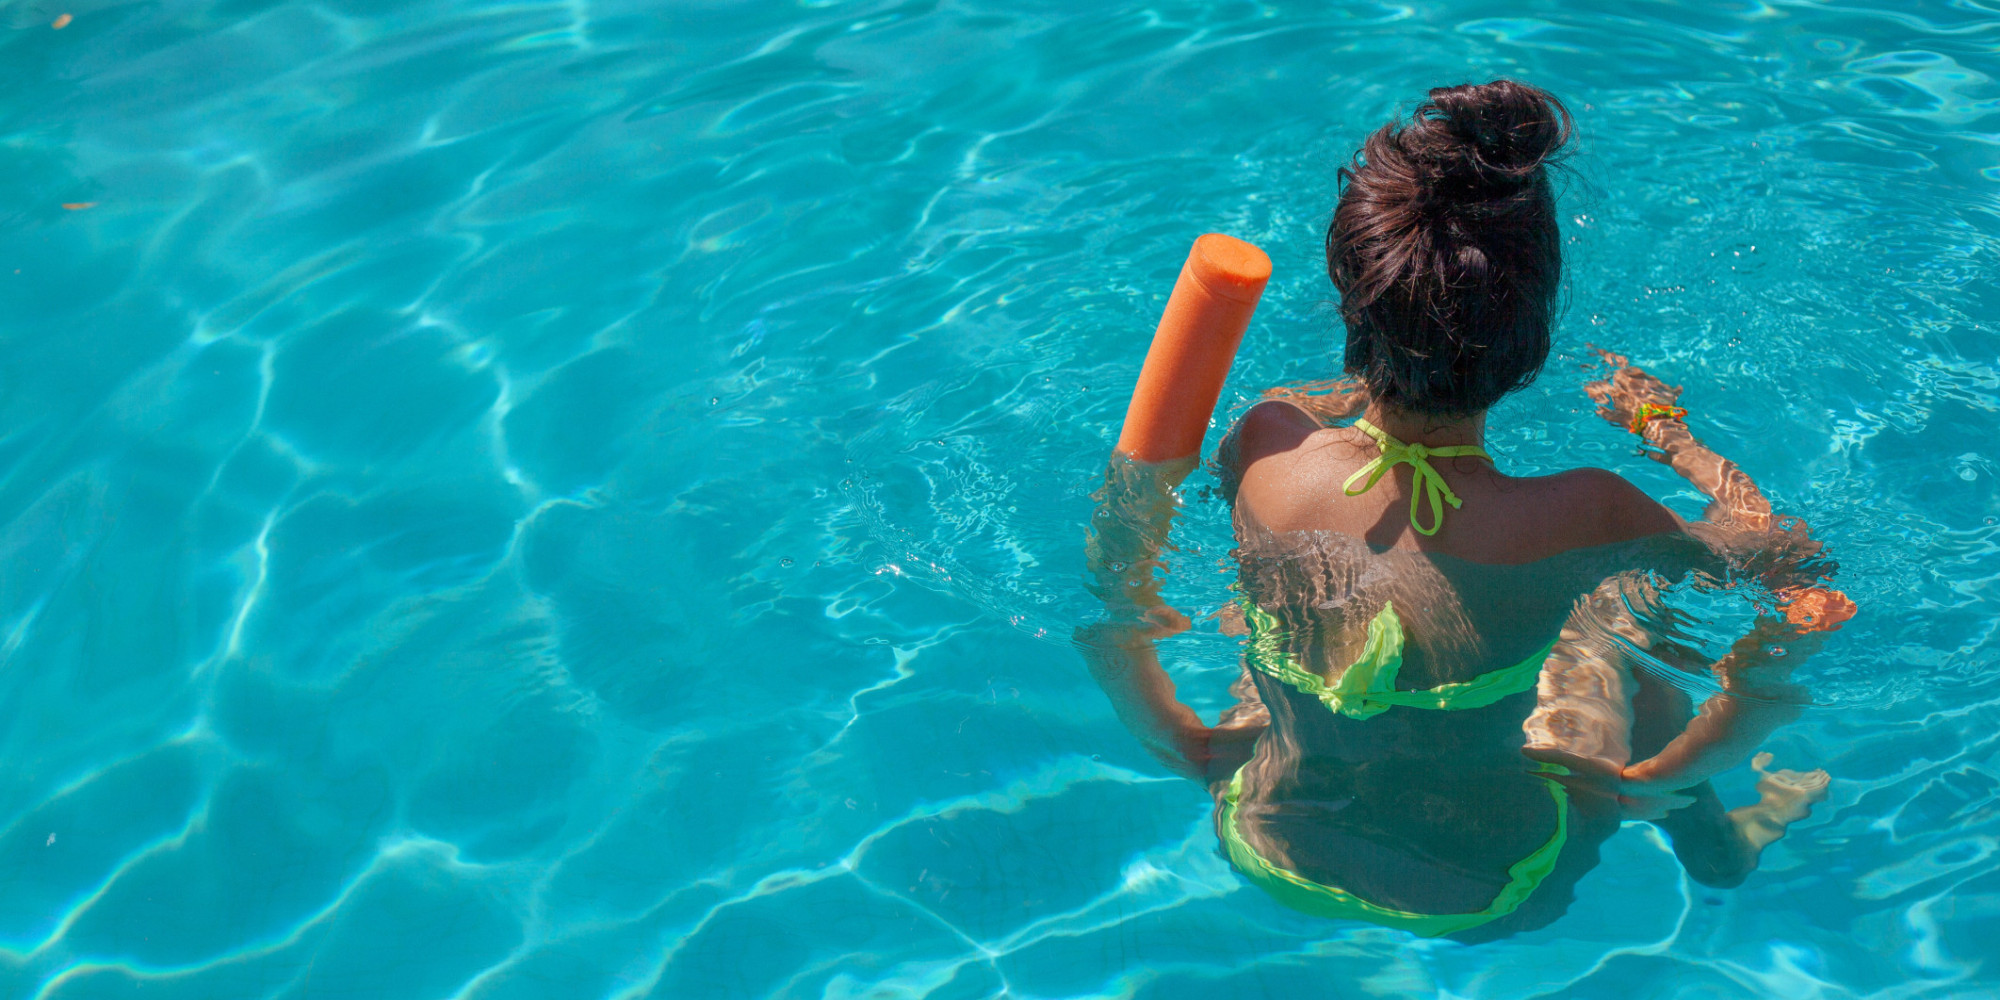 to the teenage girls at the swimming pool the huffington post